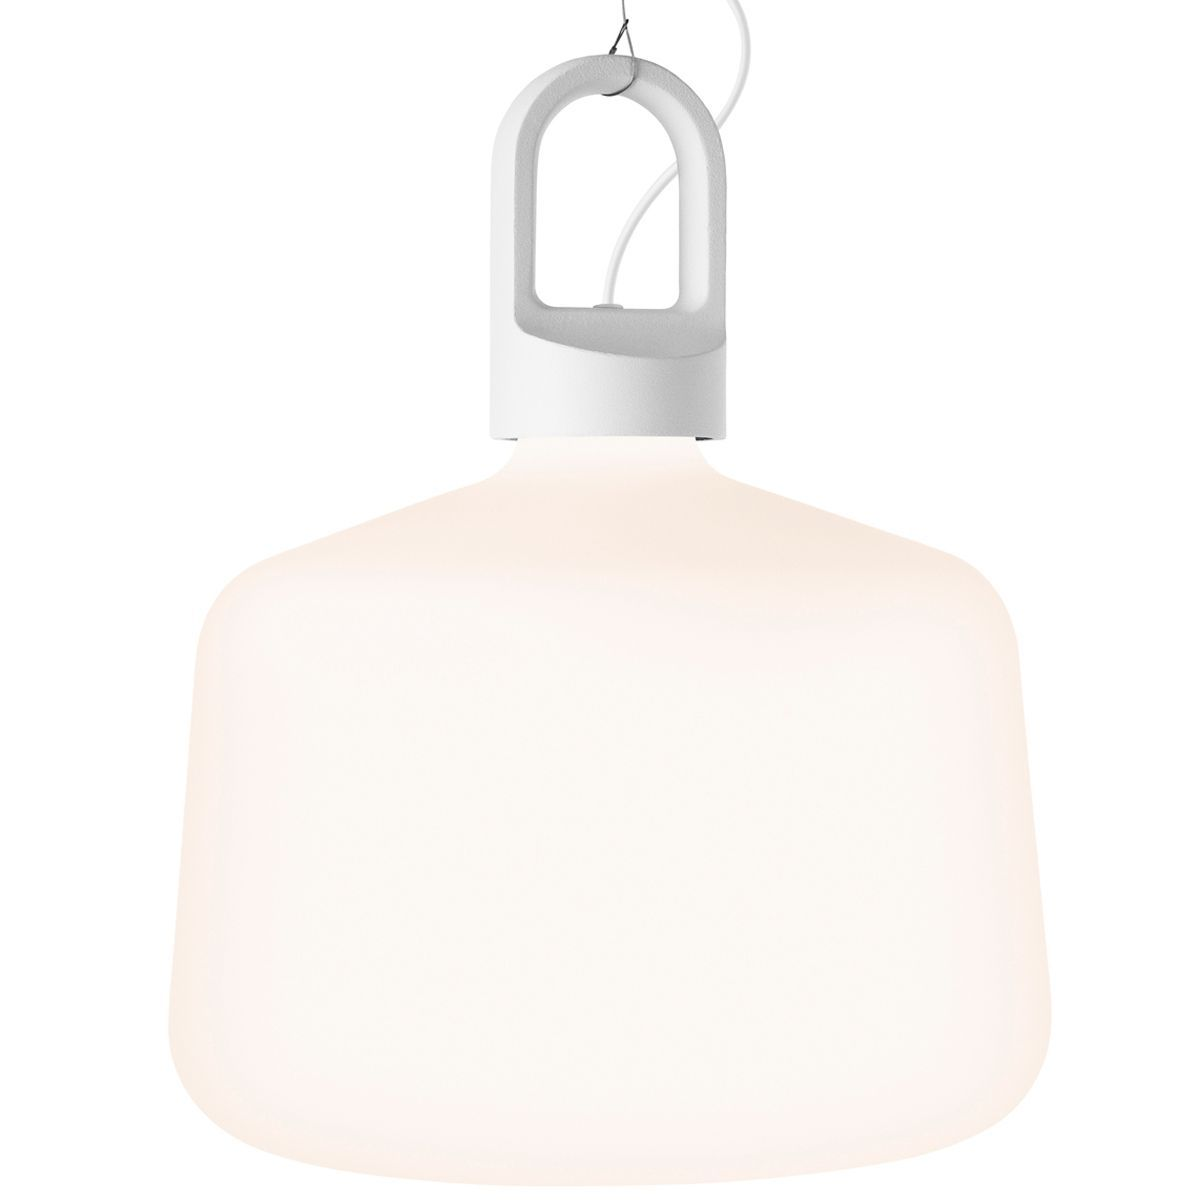 Zero Bottle hanglamp fluo wit